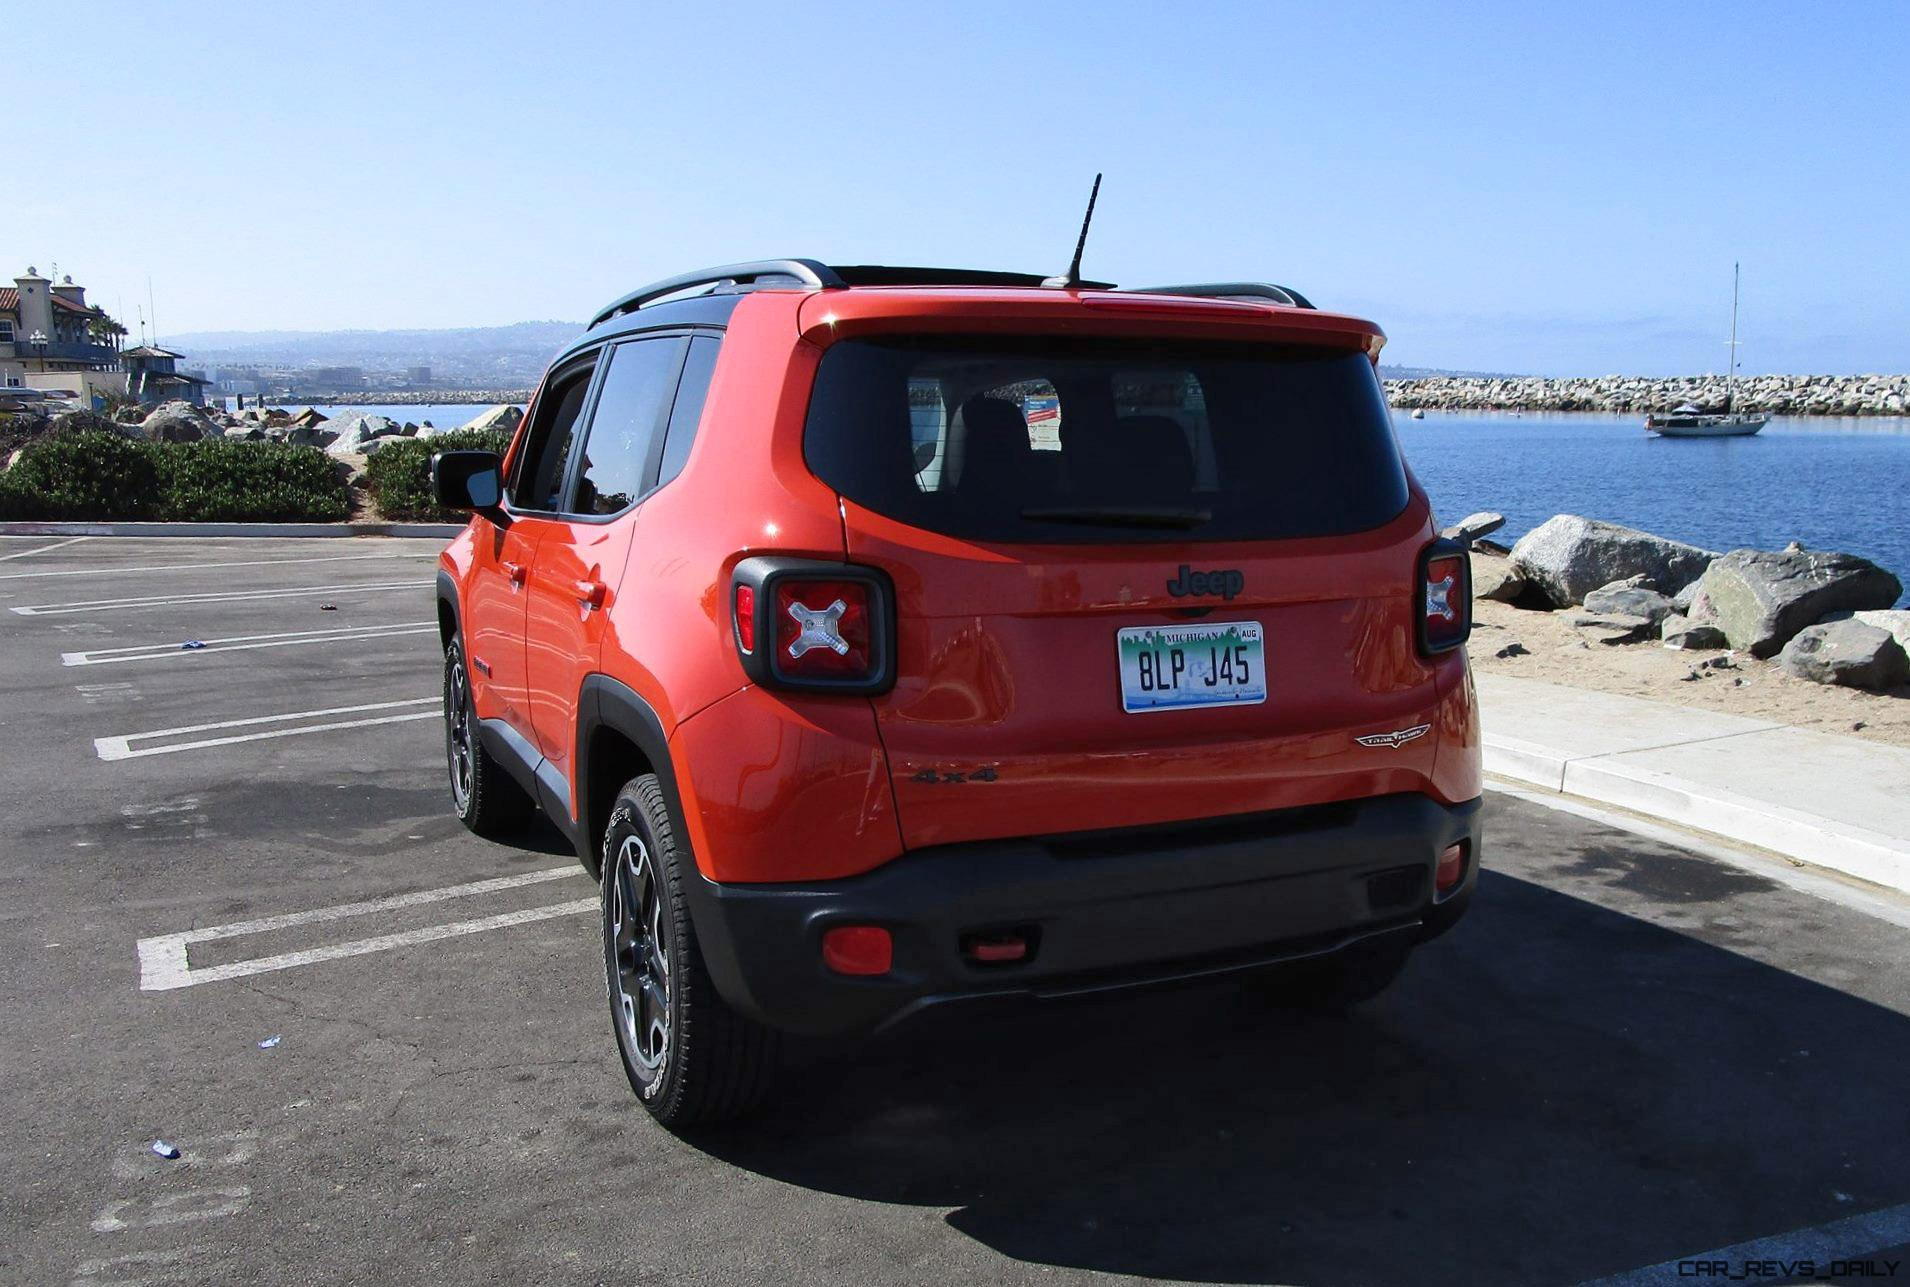 2016 Jeep RENEGADE Trailhawk 4x4 Road Test Review By